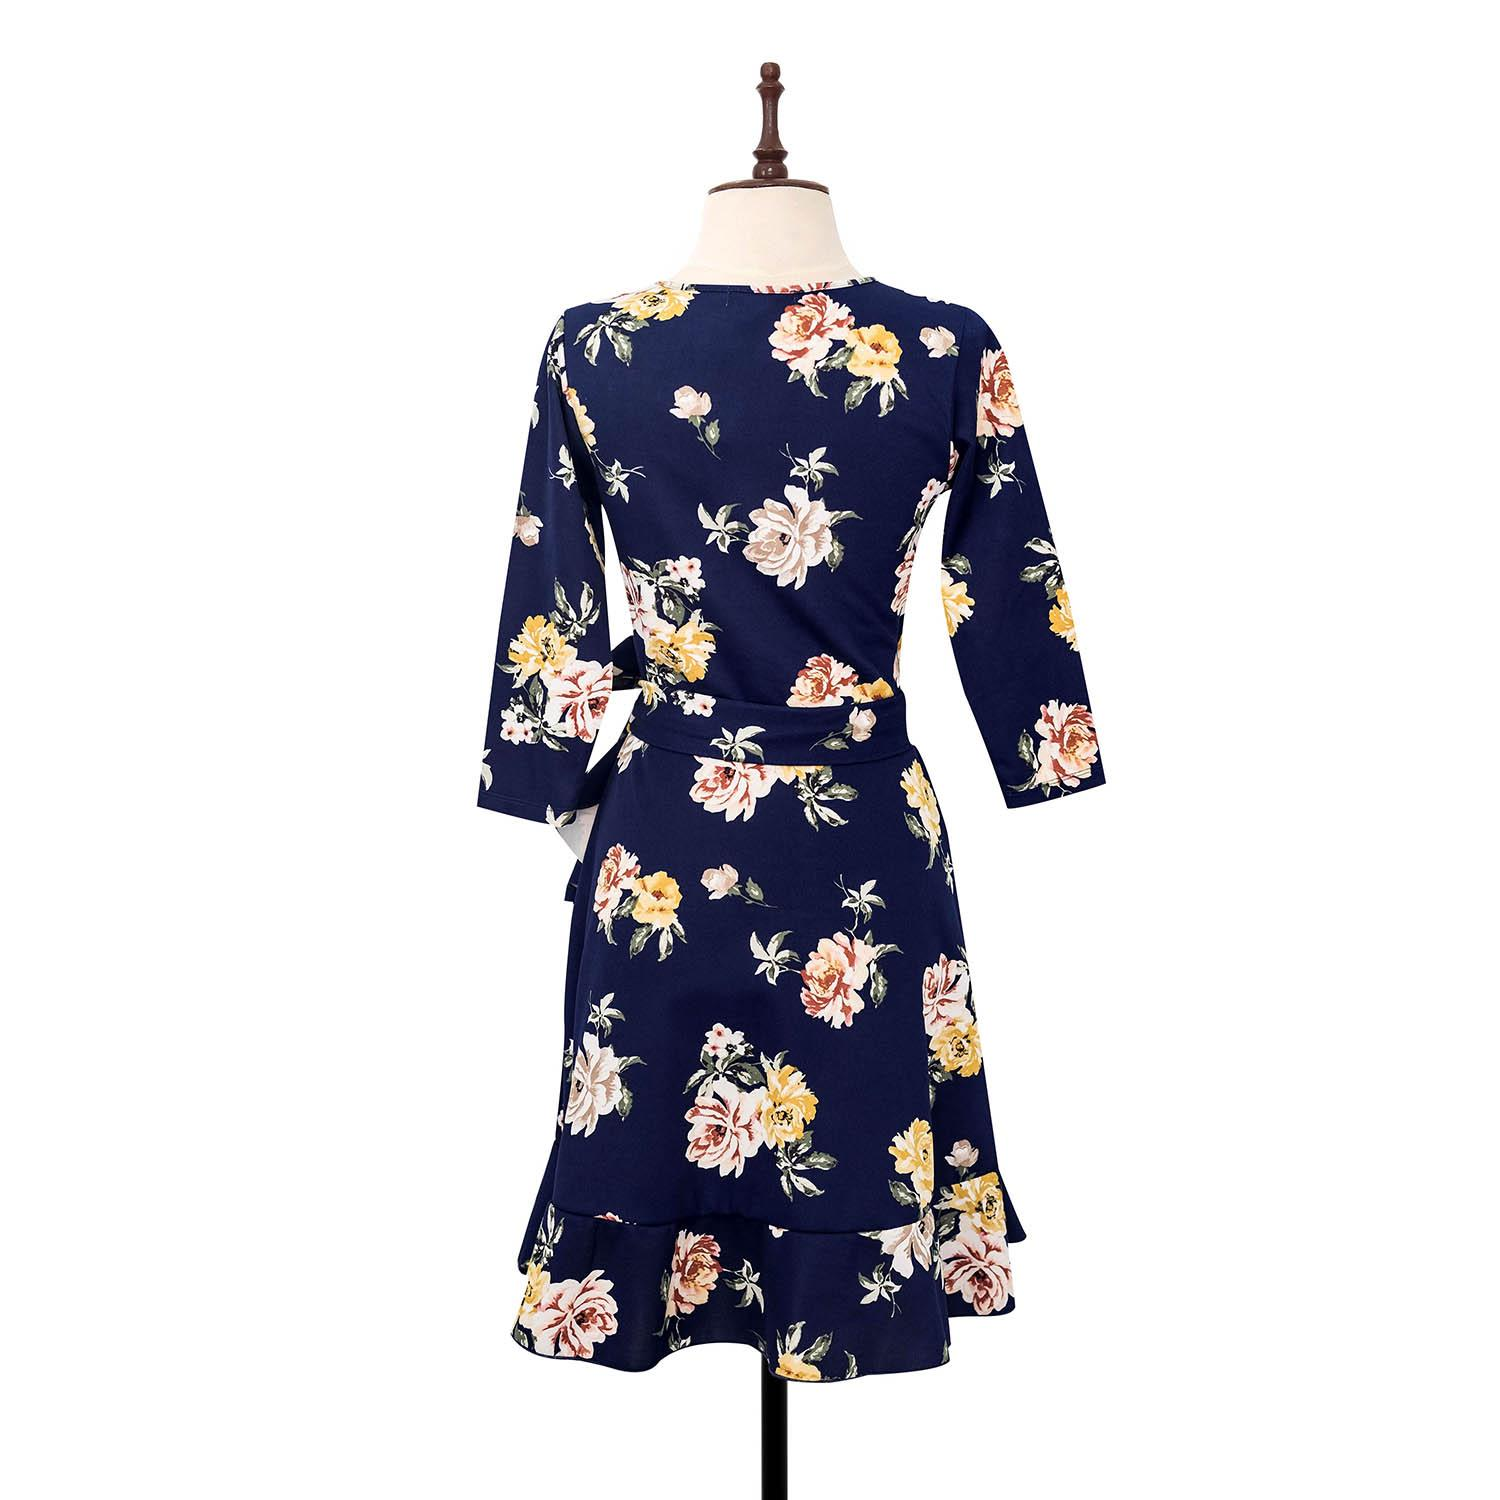 BLACK SHEEP Quarter Floral Surplice Dress w/ Ruffled hem in Blue Neoprene